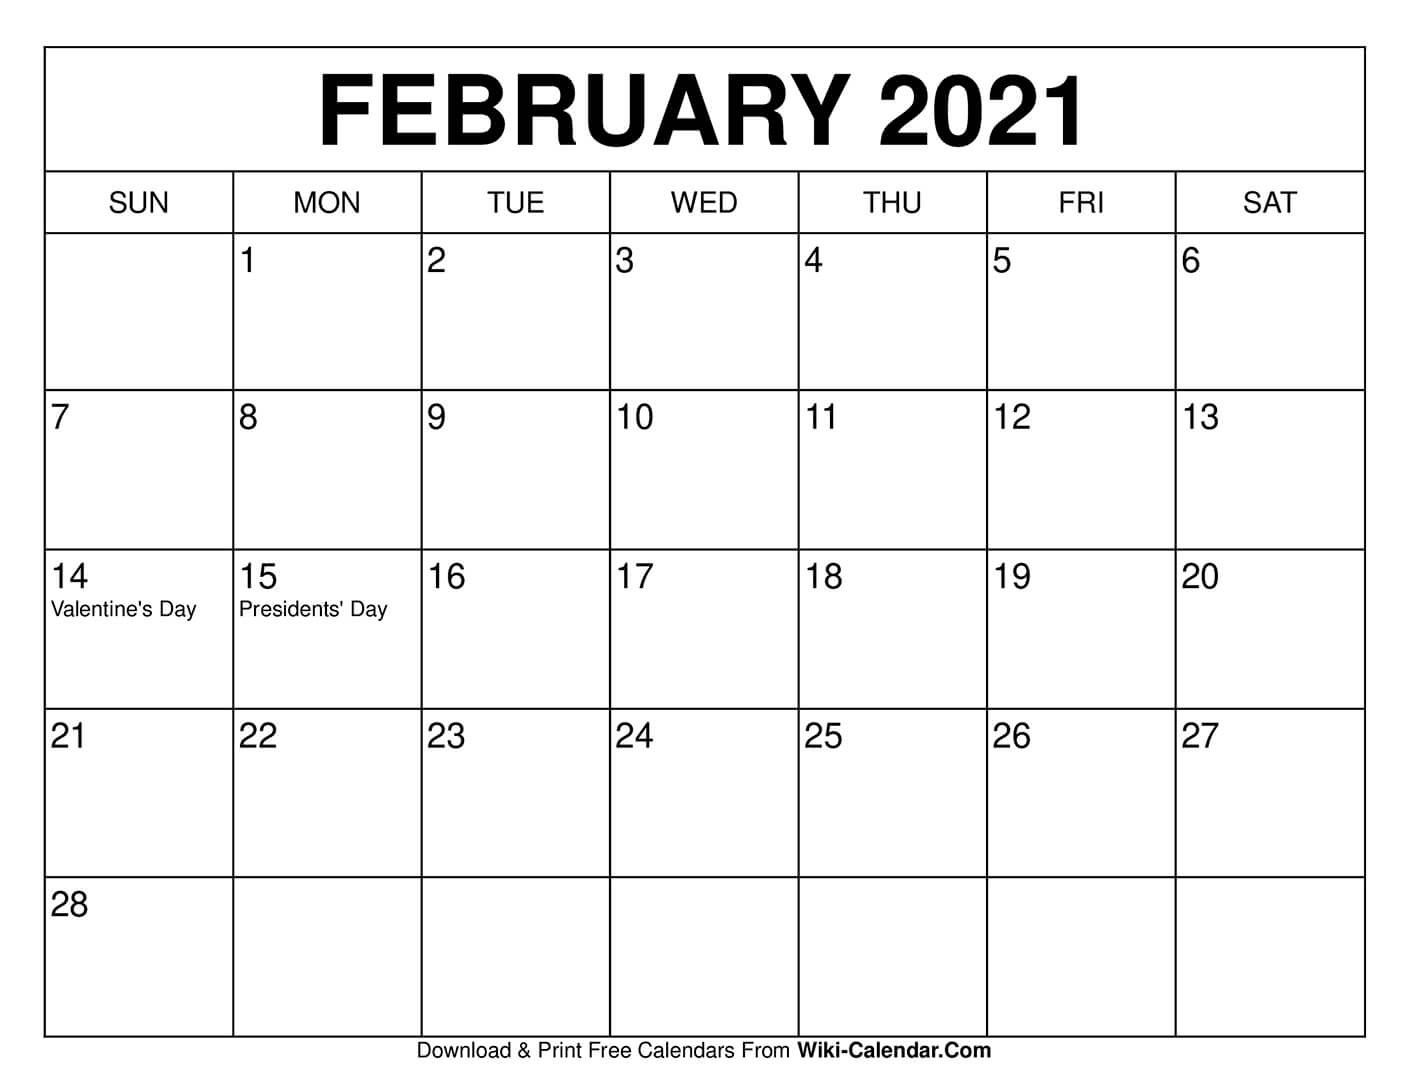 Free Printable February 2021 Calendars-Free Printable Monthly Calendar With Holidays 2021